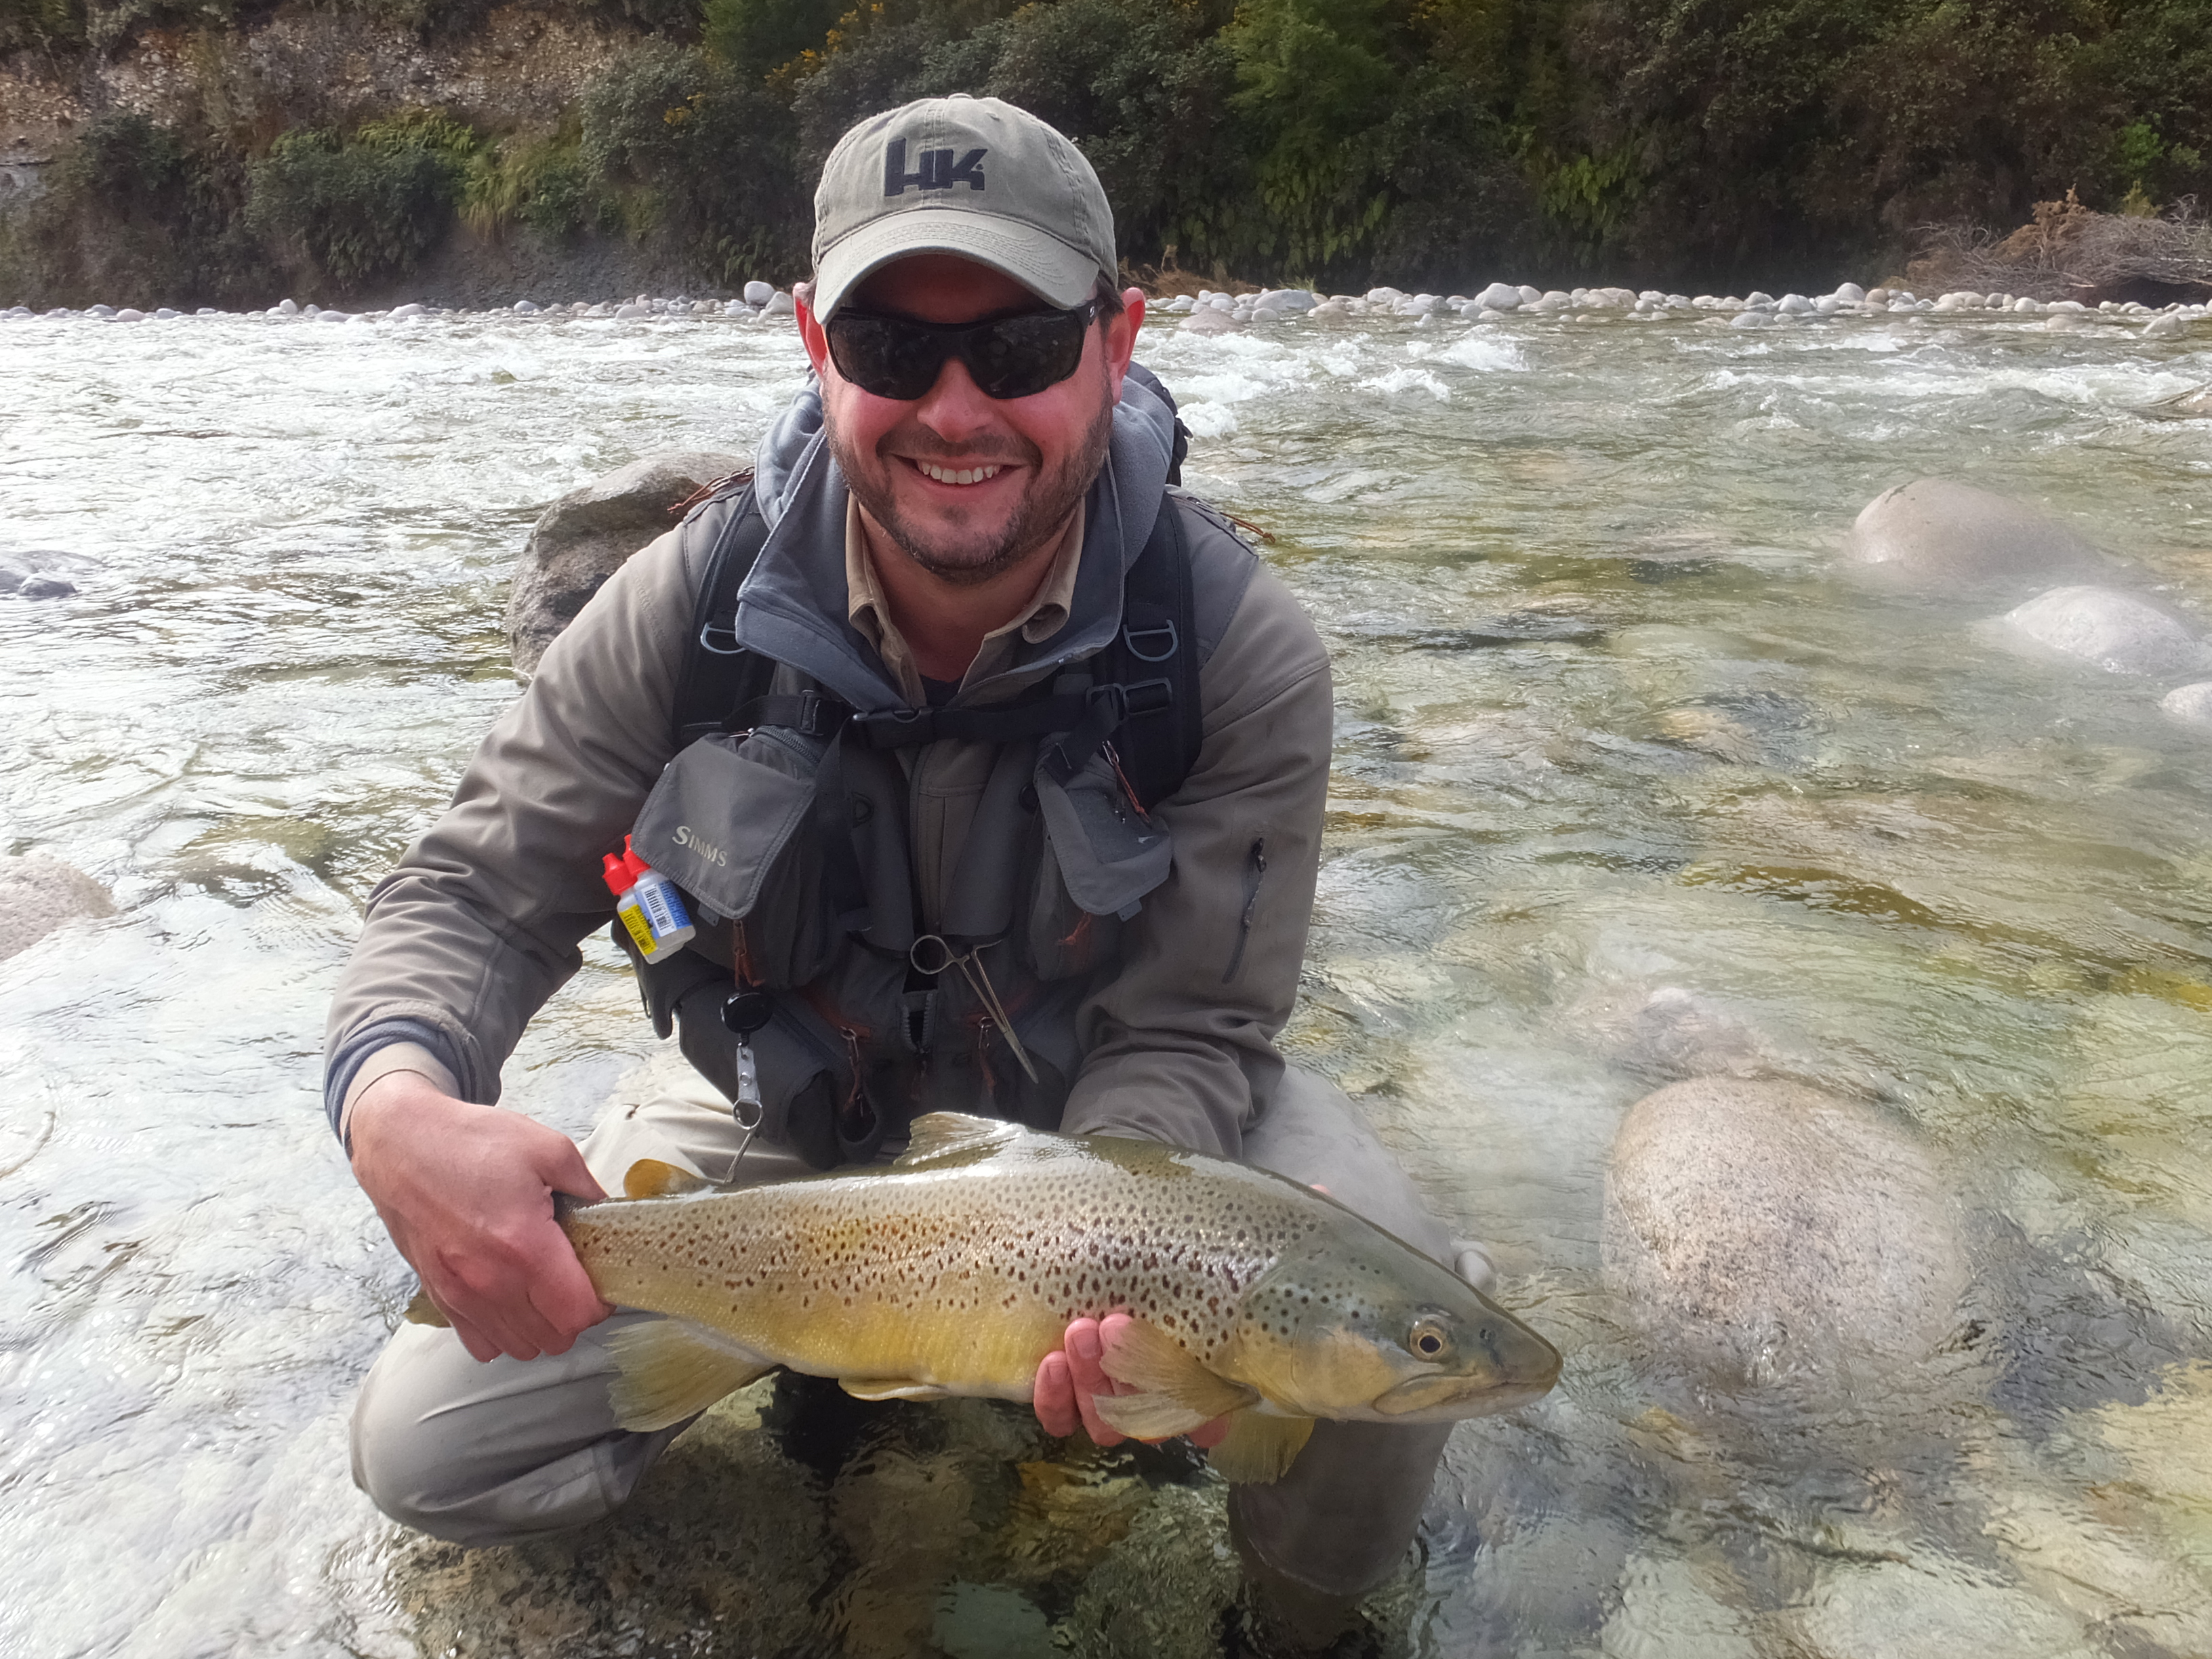 Trout fishing nz trout fishing trips fly fishing for Fly fishing vacation packages